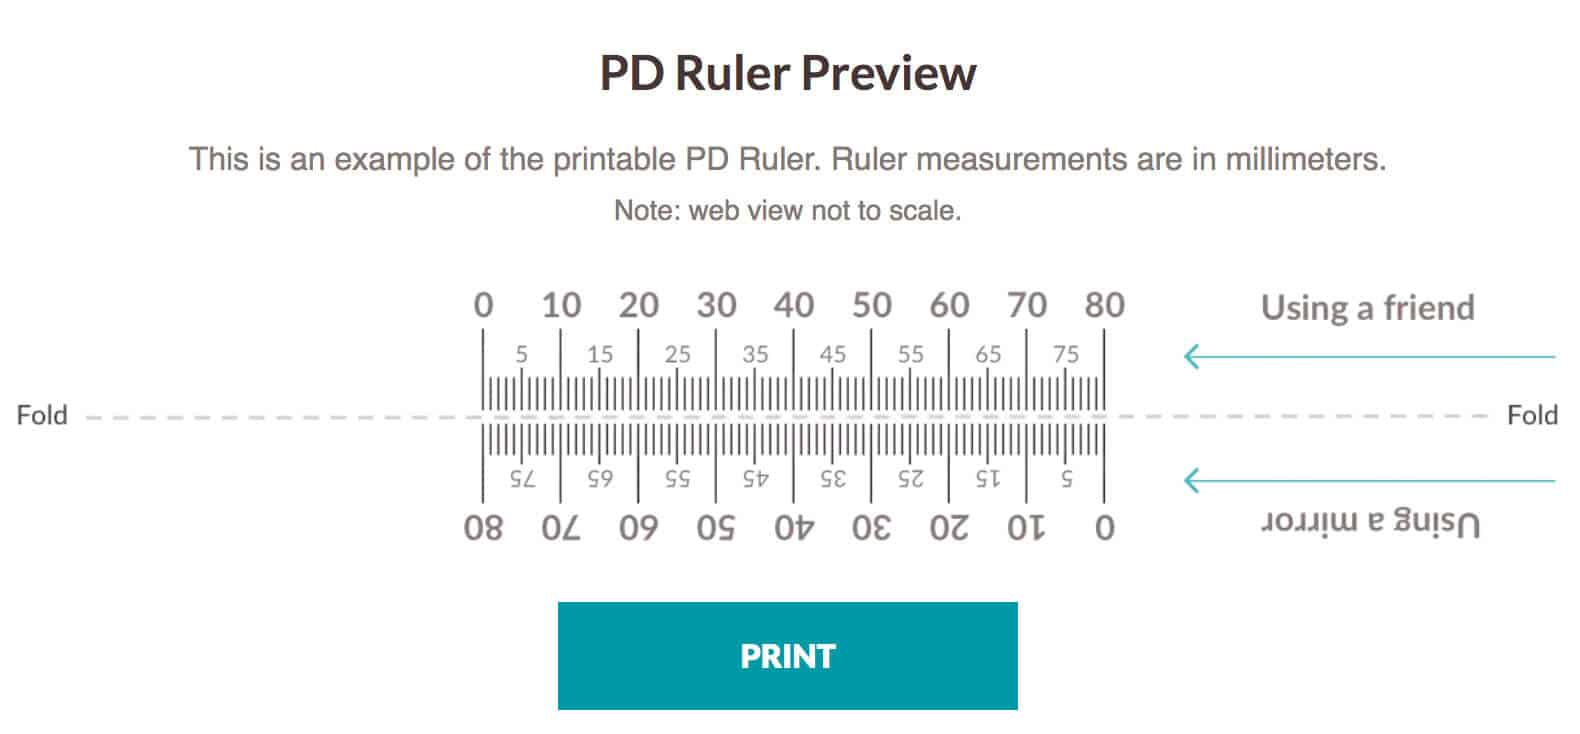 photograph relating to Printable Pd Ruler known as zenni pupillary length - 5 Minutes for Mother